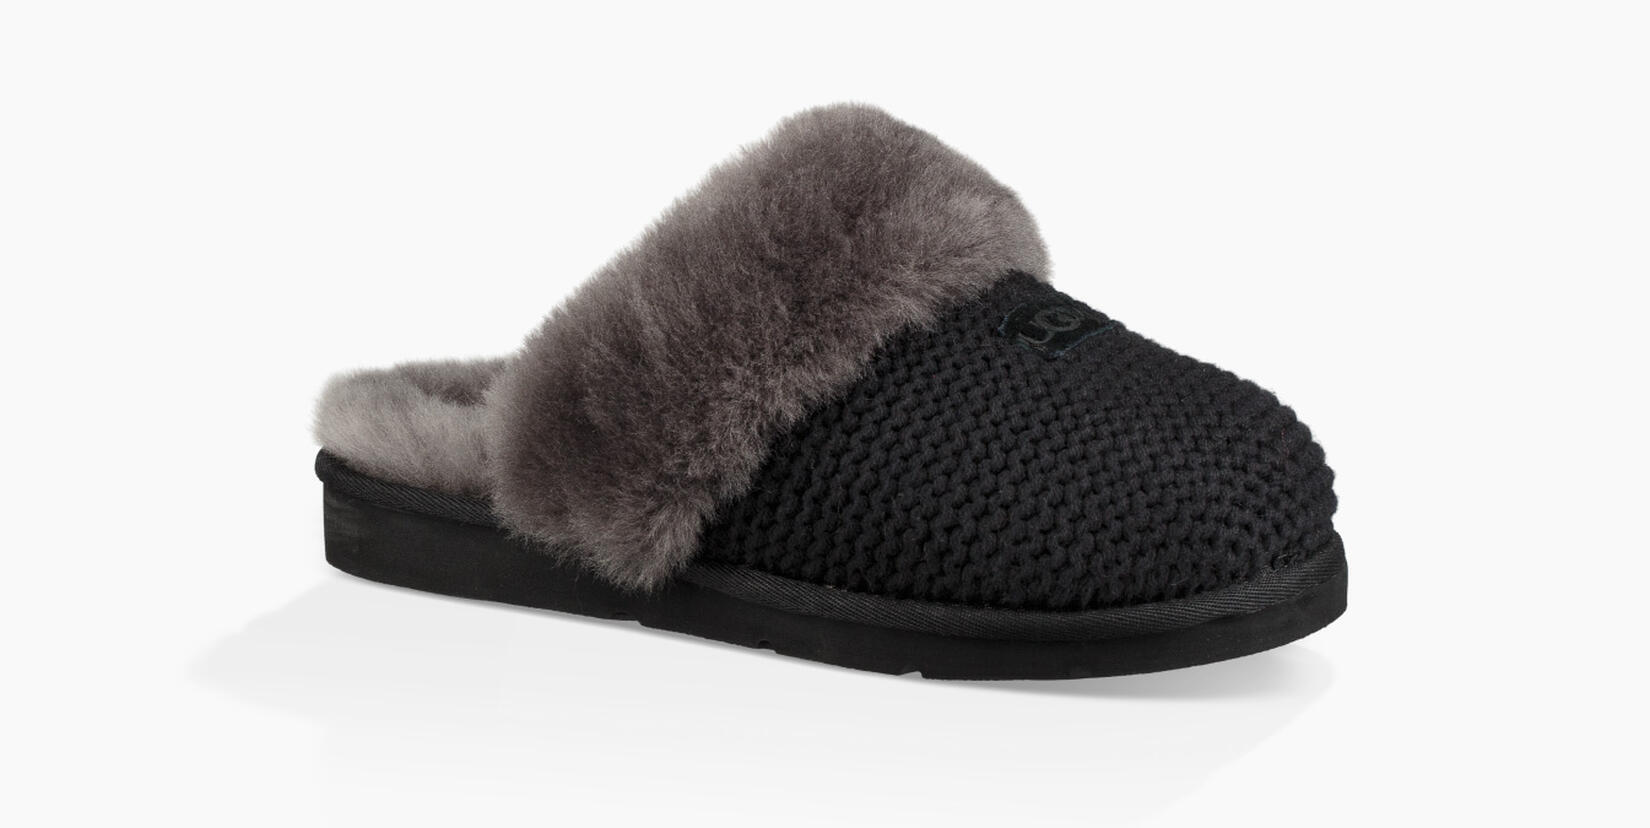 Cozy Knit Slipper